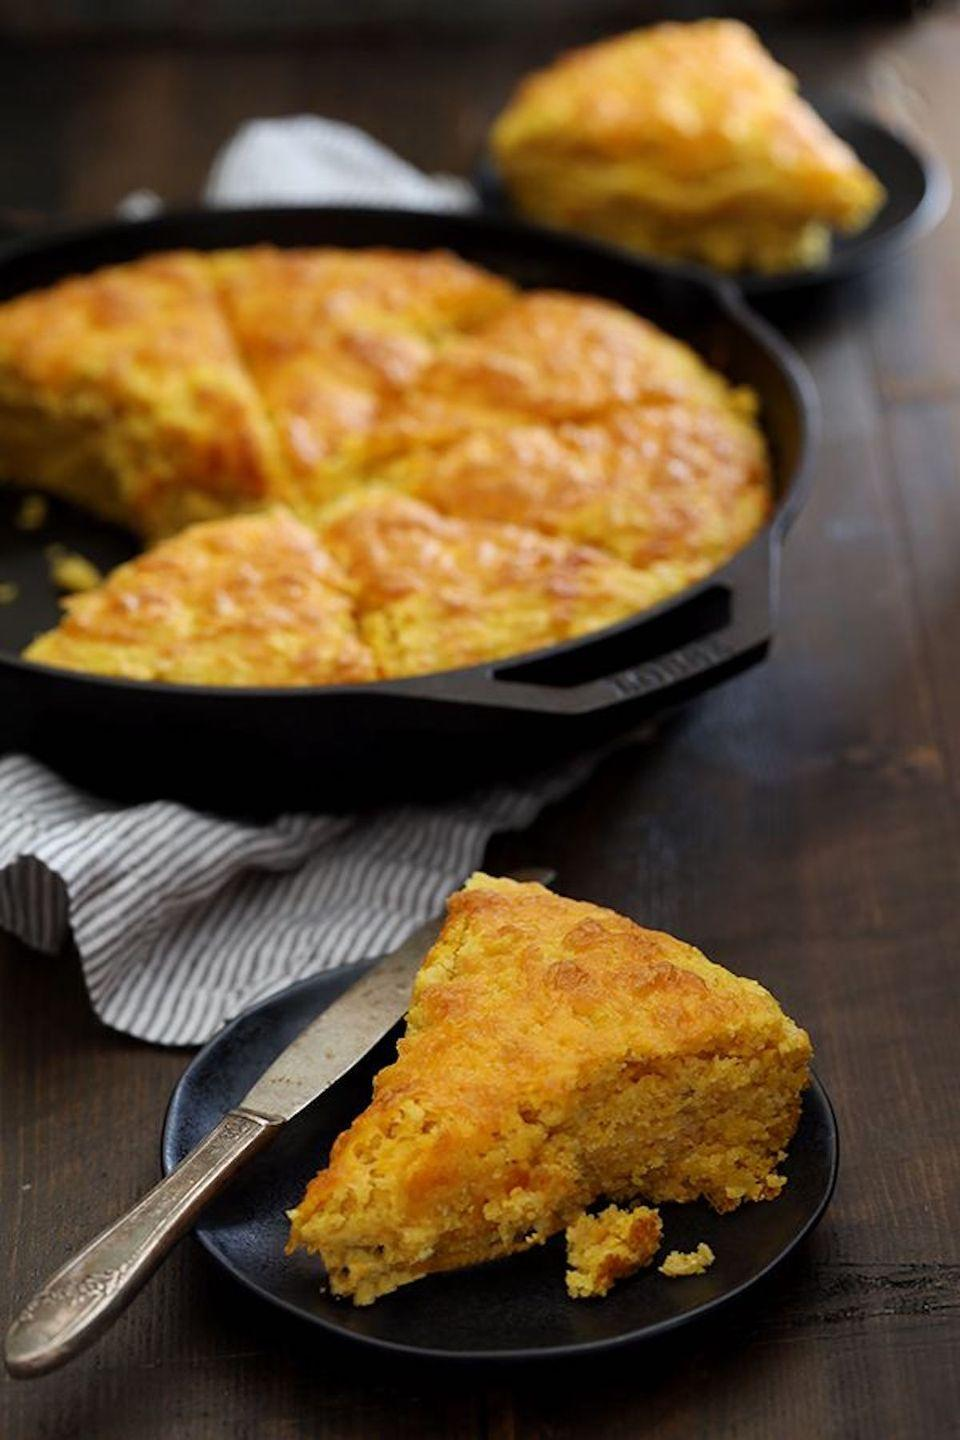 """<p>Put a sweet, seasonal twist on your favorite comfort food.</p><p><strong>Get the recipe at <a href=""""http://melaniemakes.com/blog/2016/10/pumpkin-cream-cheese-skillet-cornbread.html"""" rel=""""nofollow noopener"""" target=""""_blank"""" data-ylk=""""slk:Melanie Makes"""" class=""""link rapid-noclick-resp"""">Melanie Makes</a>. </strong><br></p><p><a class=""""link rapid-noclick-resp"""" href=""""https://www.amazon.com/Victoria-Skillet-Seasoned-Flaxseed-Certified/dp/B01726HD72/?tag=syn-yahoo-20&ascsubtag=%5Bartid%7C10050.g.619%5Bsrc%7Cyahoo-us"""" rel=""""nofollow noopener"""" target=""""_blank"""" data-ylk=""""slk:SHOP CAST IRON SKILLETS"""">SHOP CAST IRON SKILLETS</a></p>"""